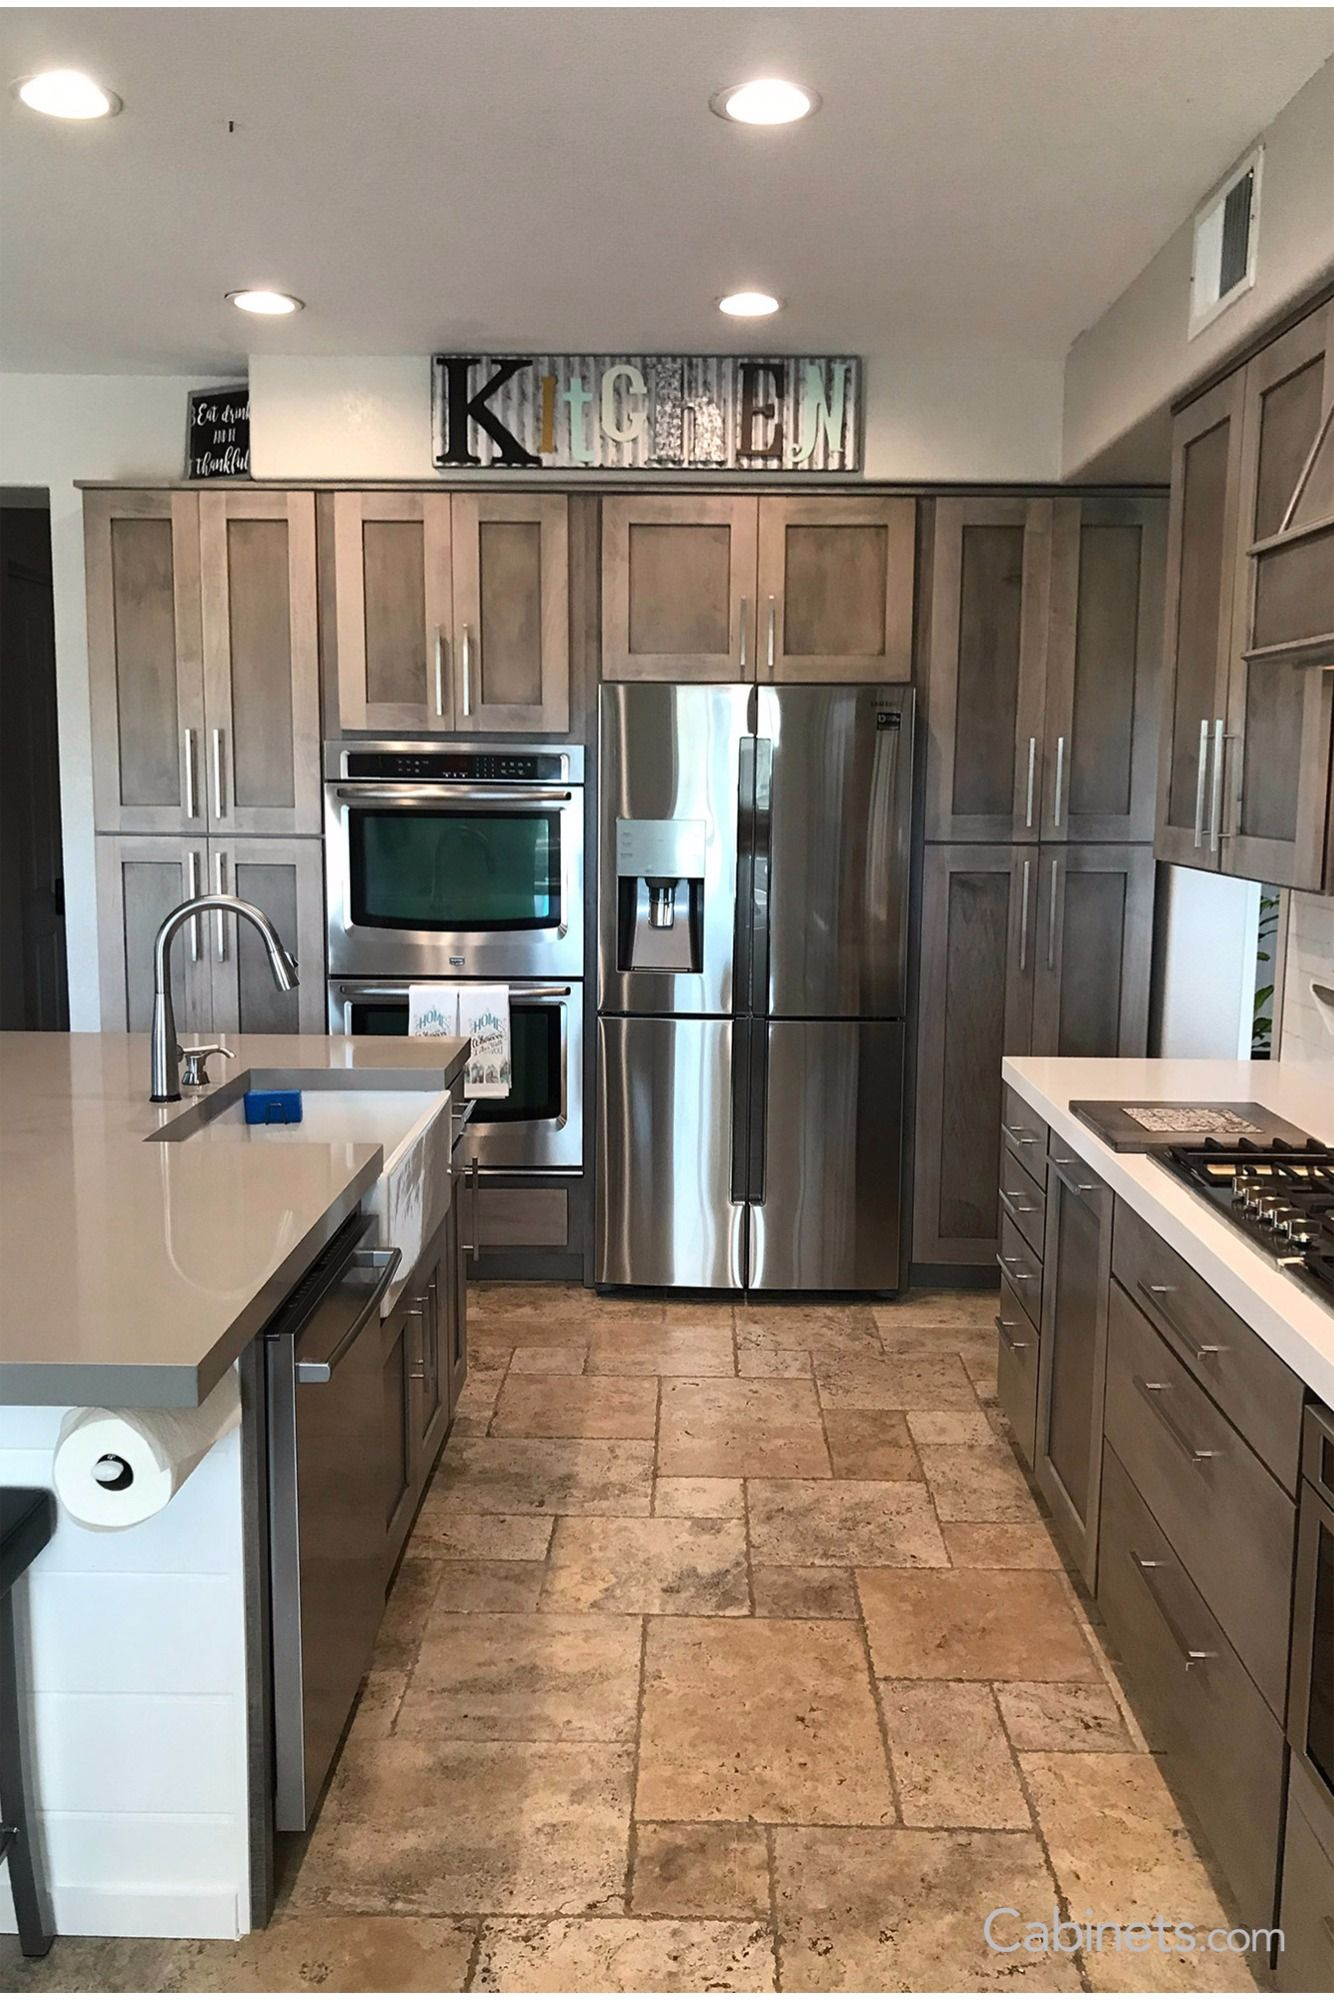 This Farmhouse Modern Kitchen Features Shaker Cabinets In Our New Gray Stain Storm Stained Kitchen Cabinets Kitchen Cabinet Styles Kitchen Cabinet Plans